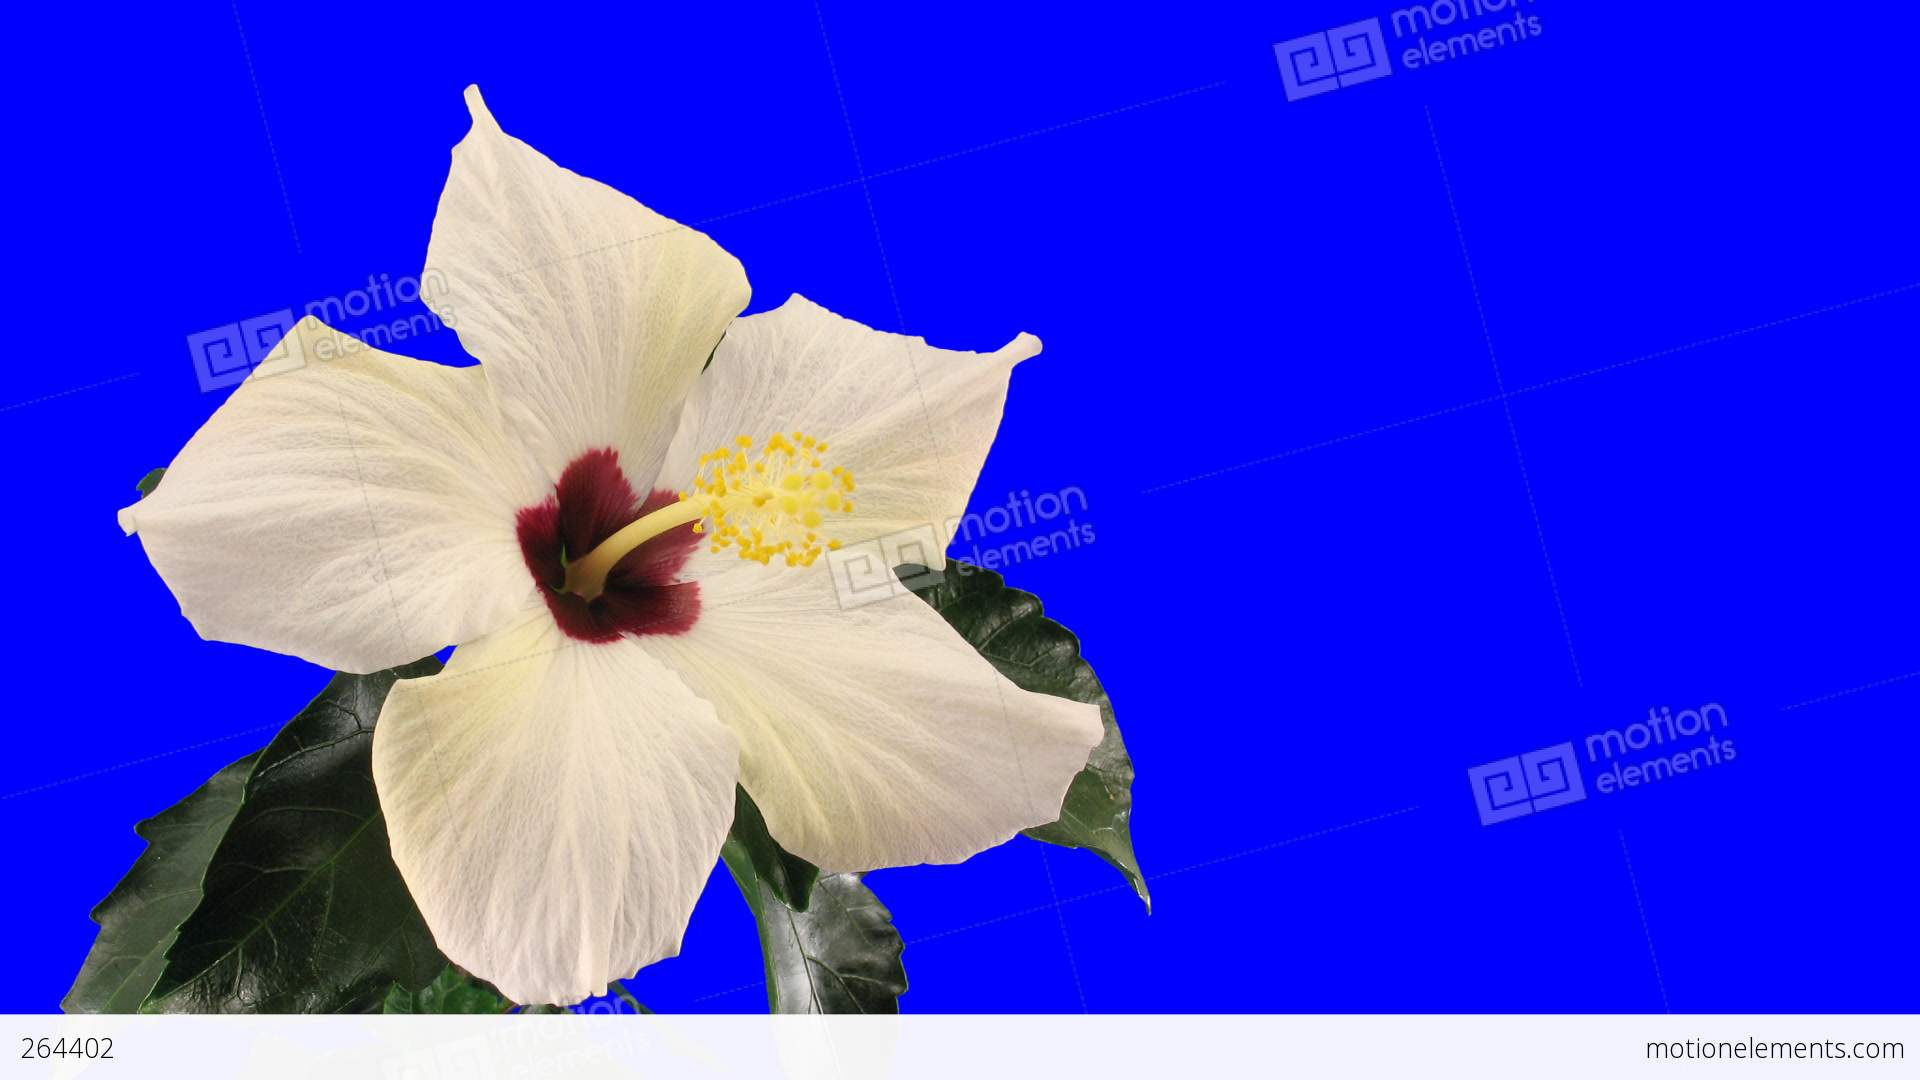 Time lapse of white hibiscus flower opening 9 chroma key stock video time lapse of white hibiscus flower opening 9 chroma key stock video footage izmirmasajfo